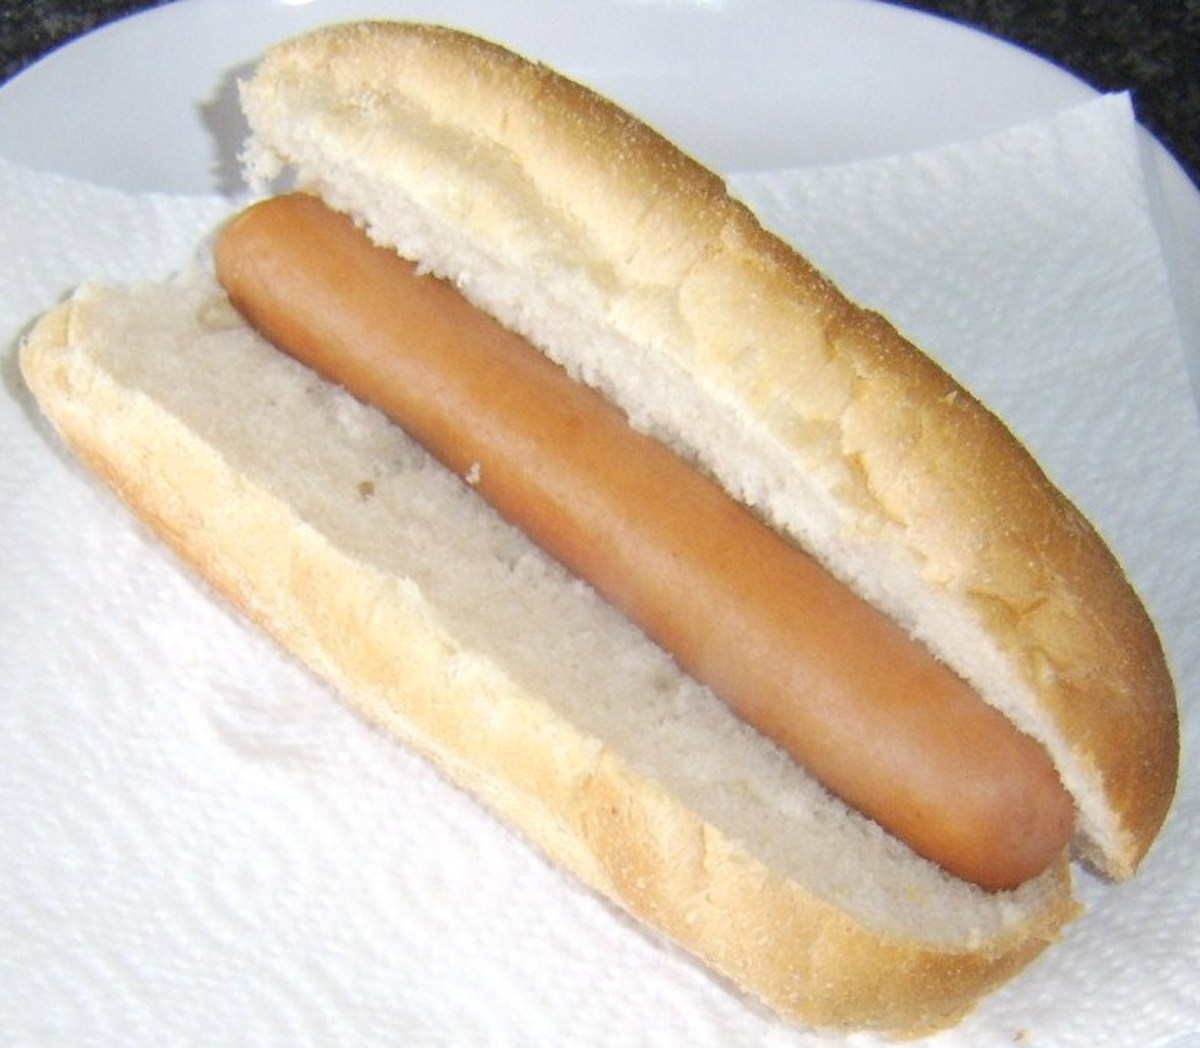 Hot dog on sub roll